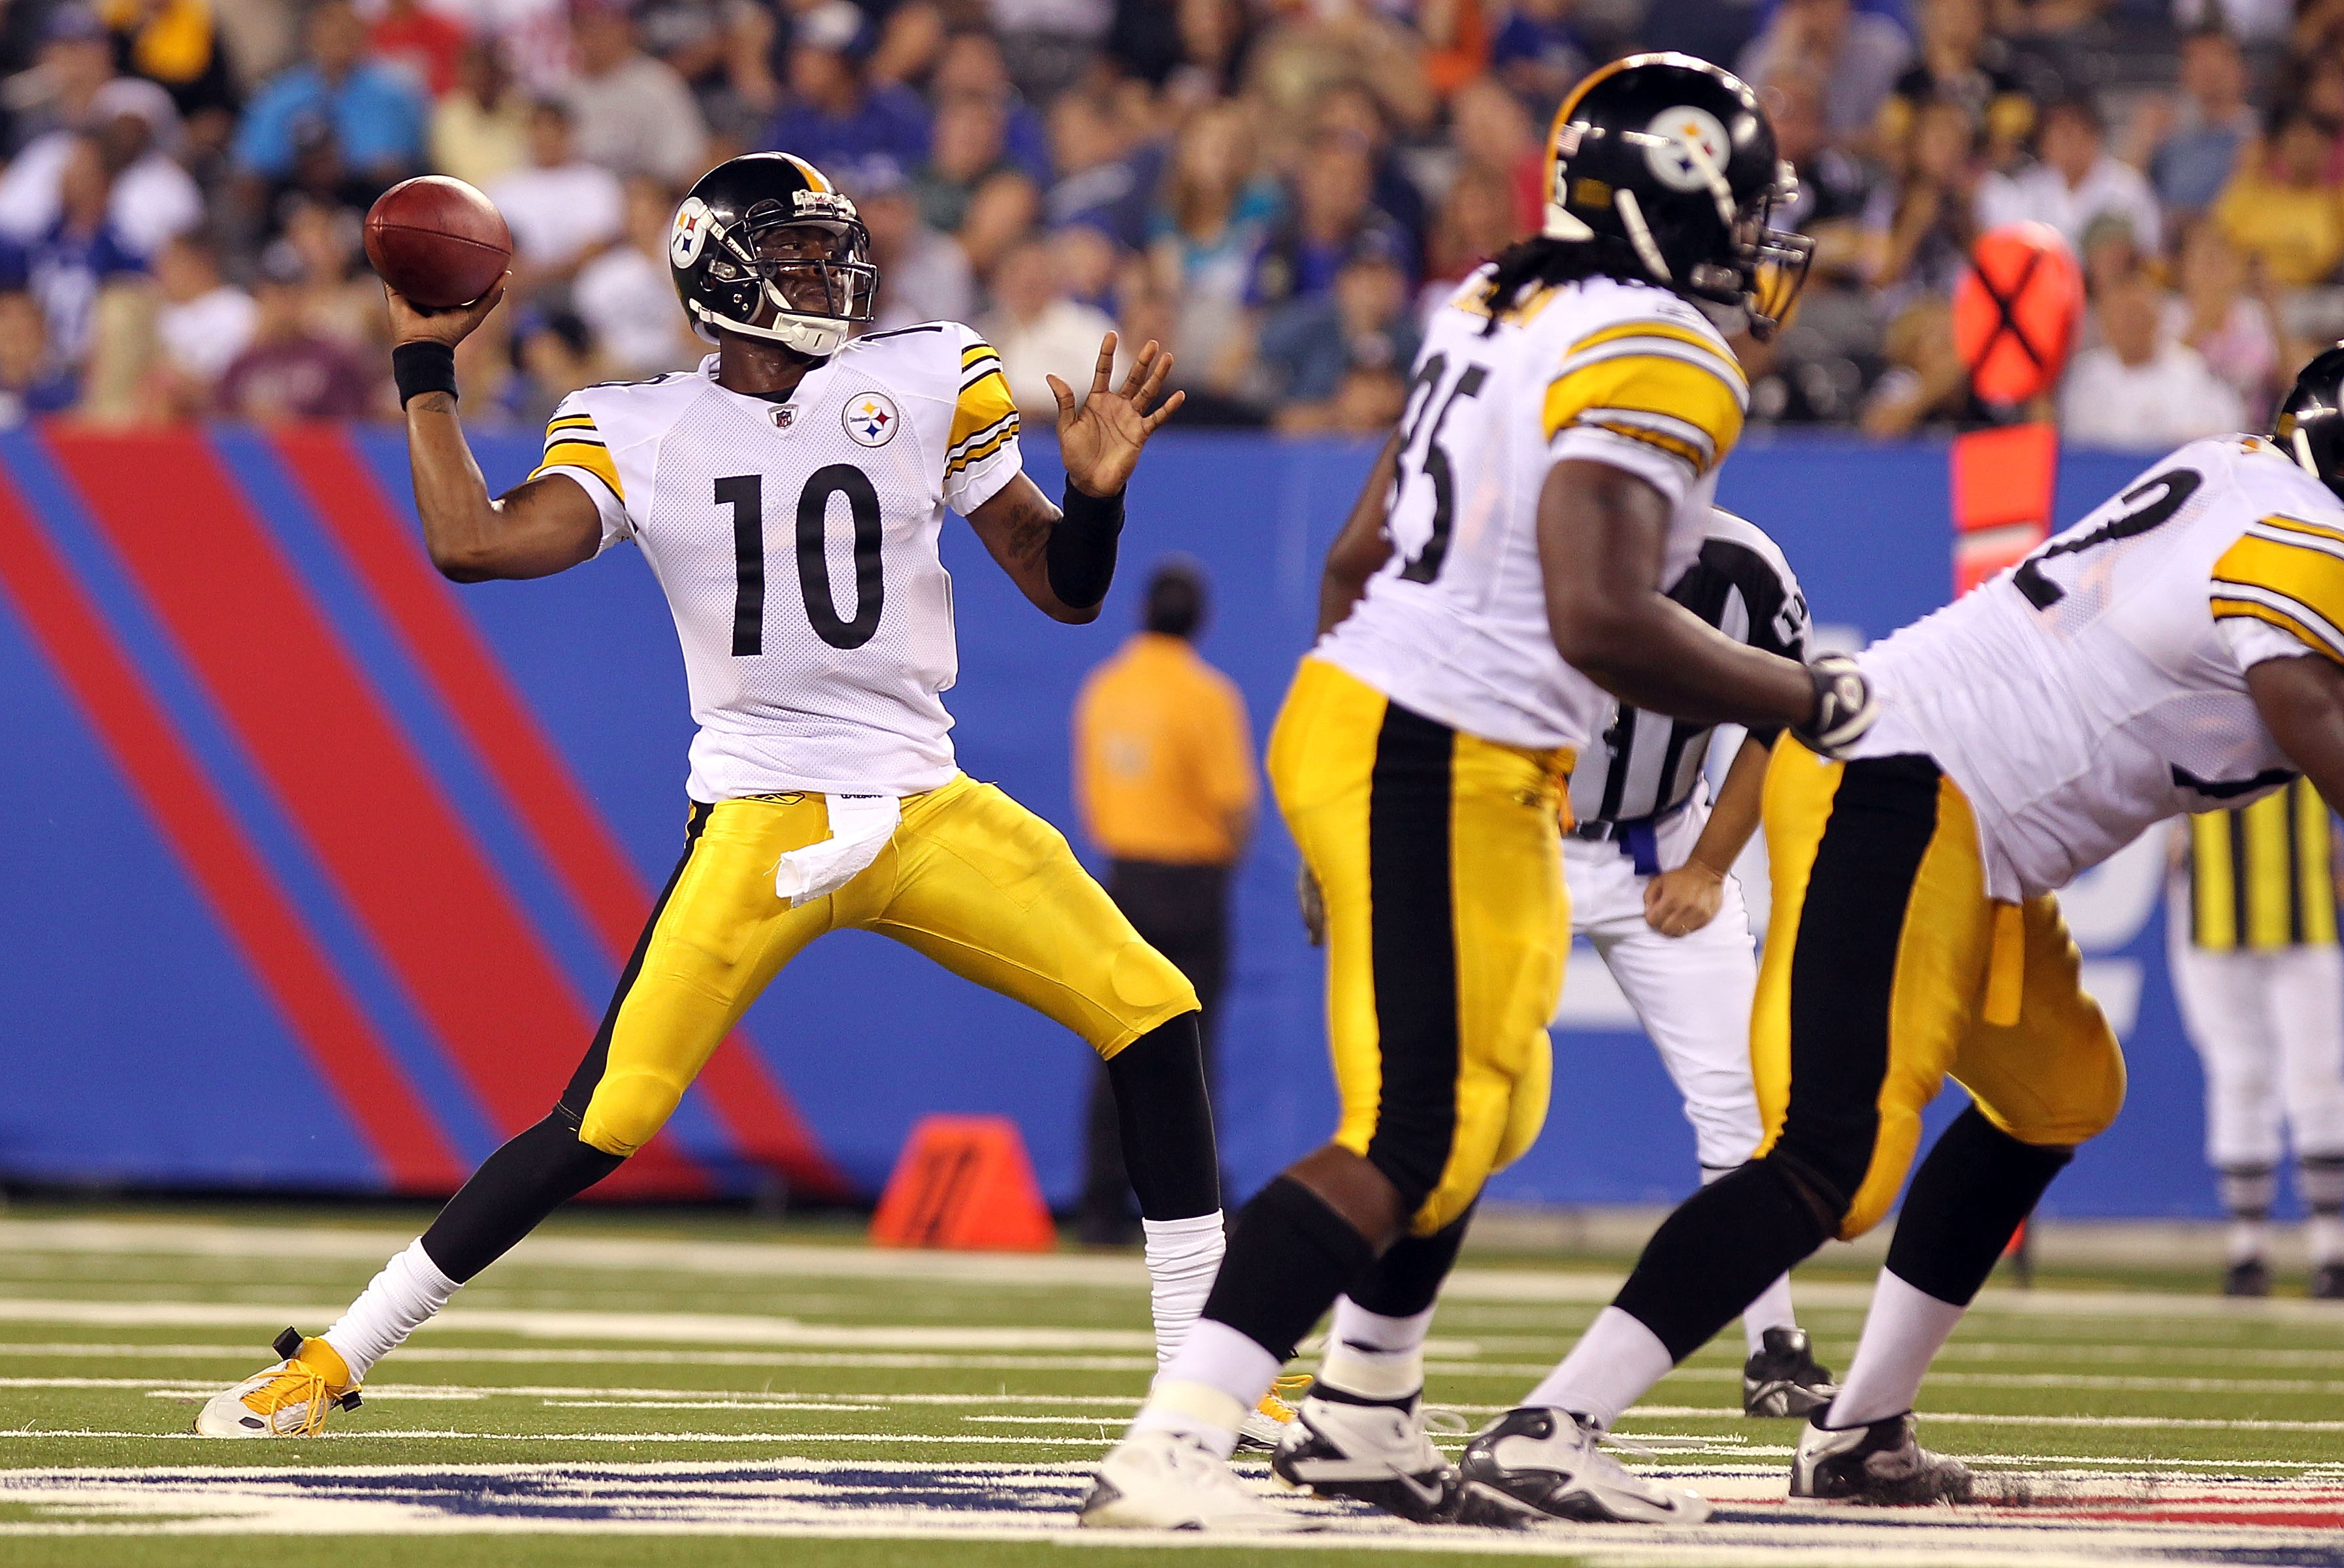 EAST RUTHERFORD, NJ - AUGUST 21:  Dennis Dixon #10 of the Pittsburgh Steelers drops back to pass against the New York Giants during their preseason game at New Meadowlands Stadium on August 21, 2010 in East Rutherford, New Jersey.  (Photo by Nick Laham/Ge